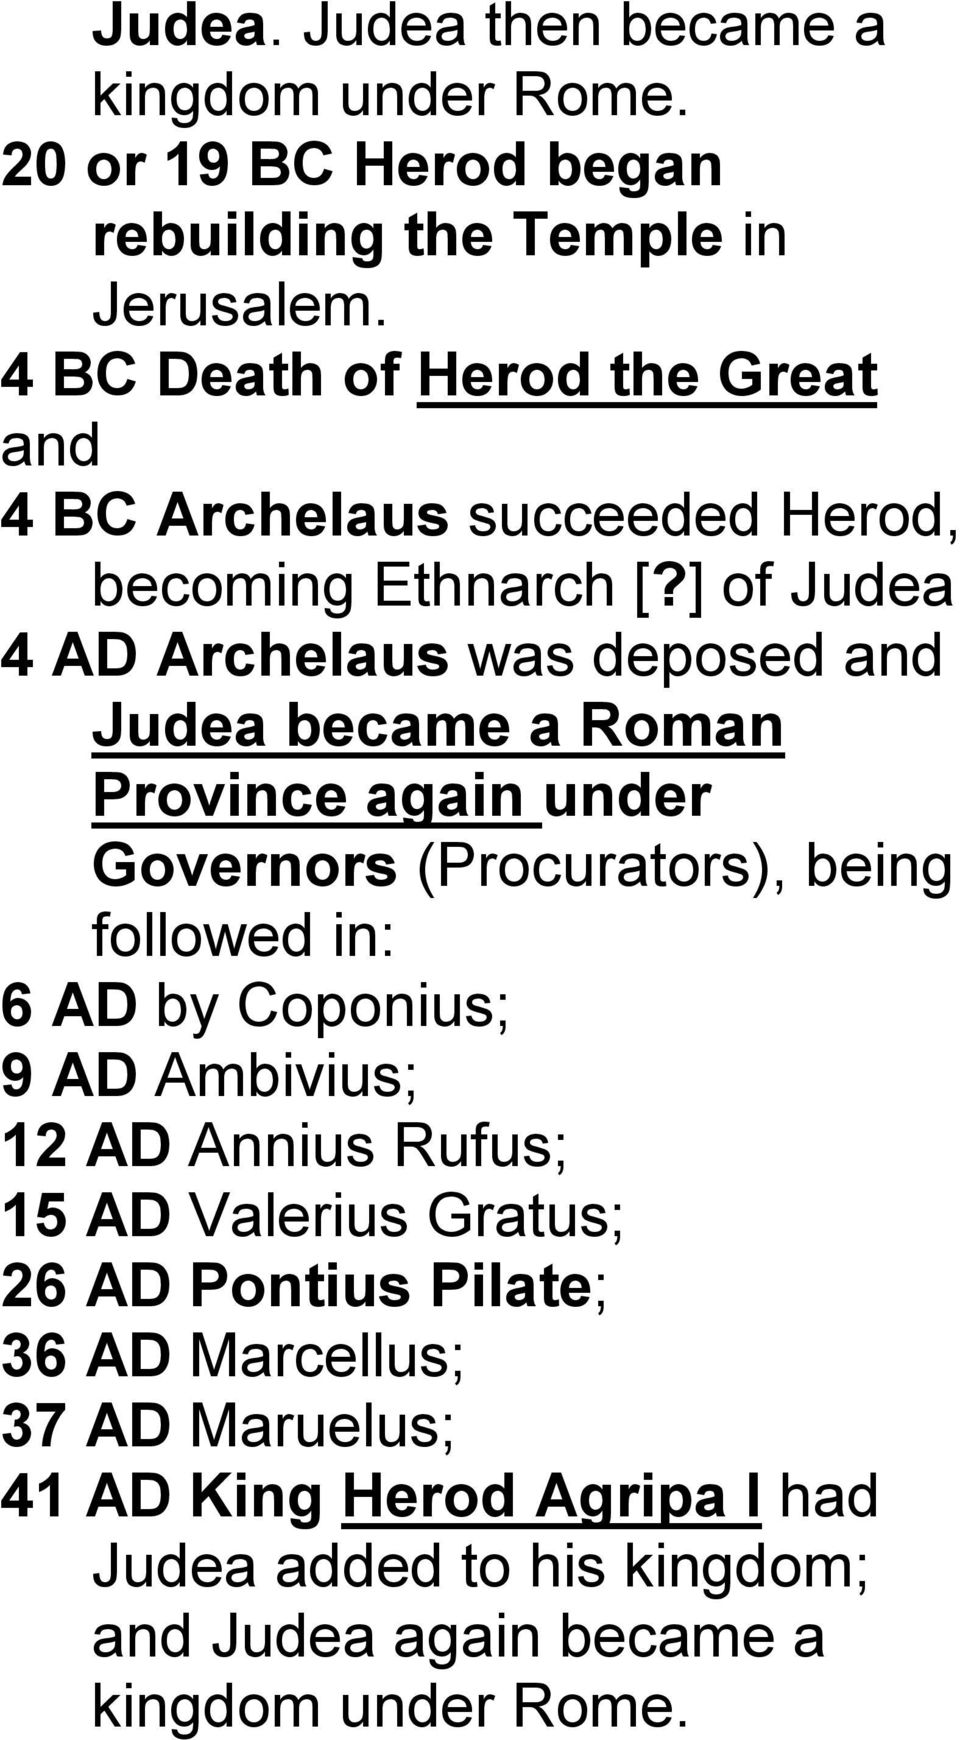 ] of Judea 4 AD Archelaus was deposed and Judea became a Roman Province again under Governors (Procurators), being followed in: 6 AD by